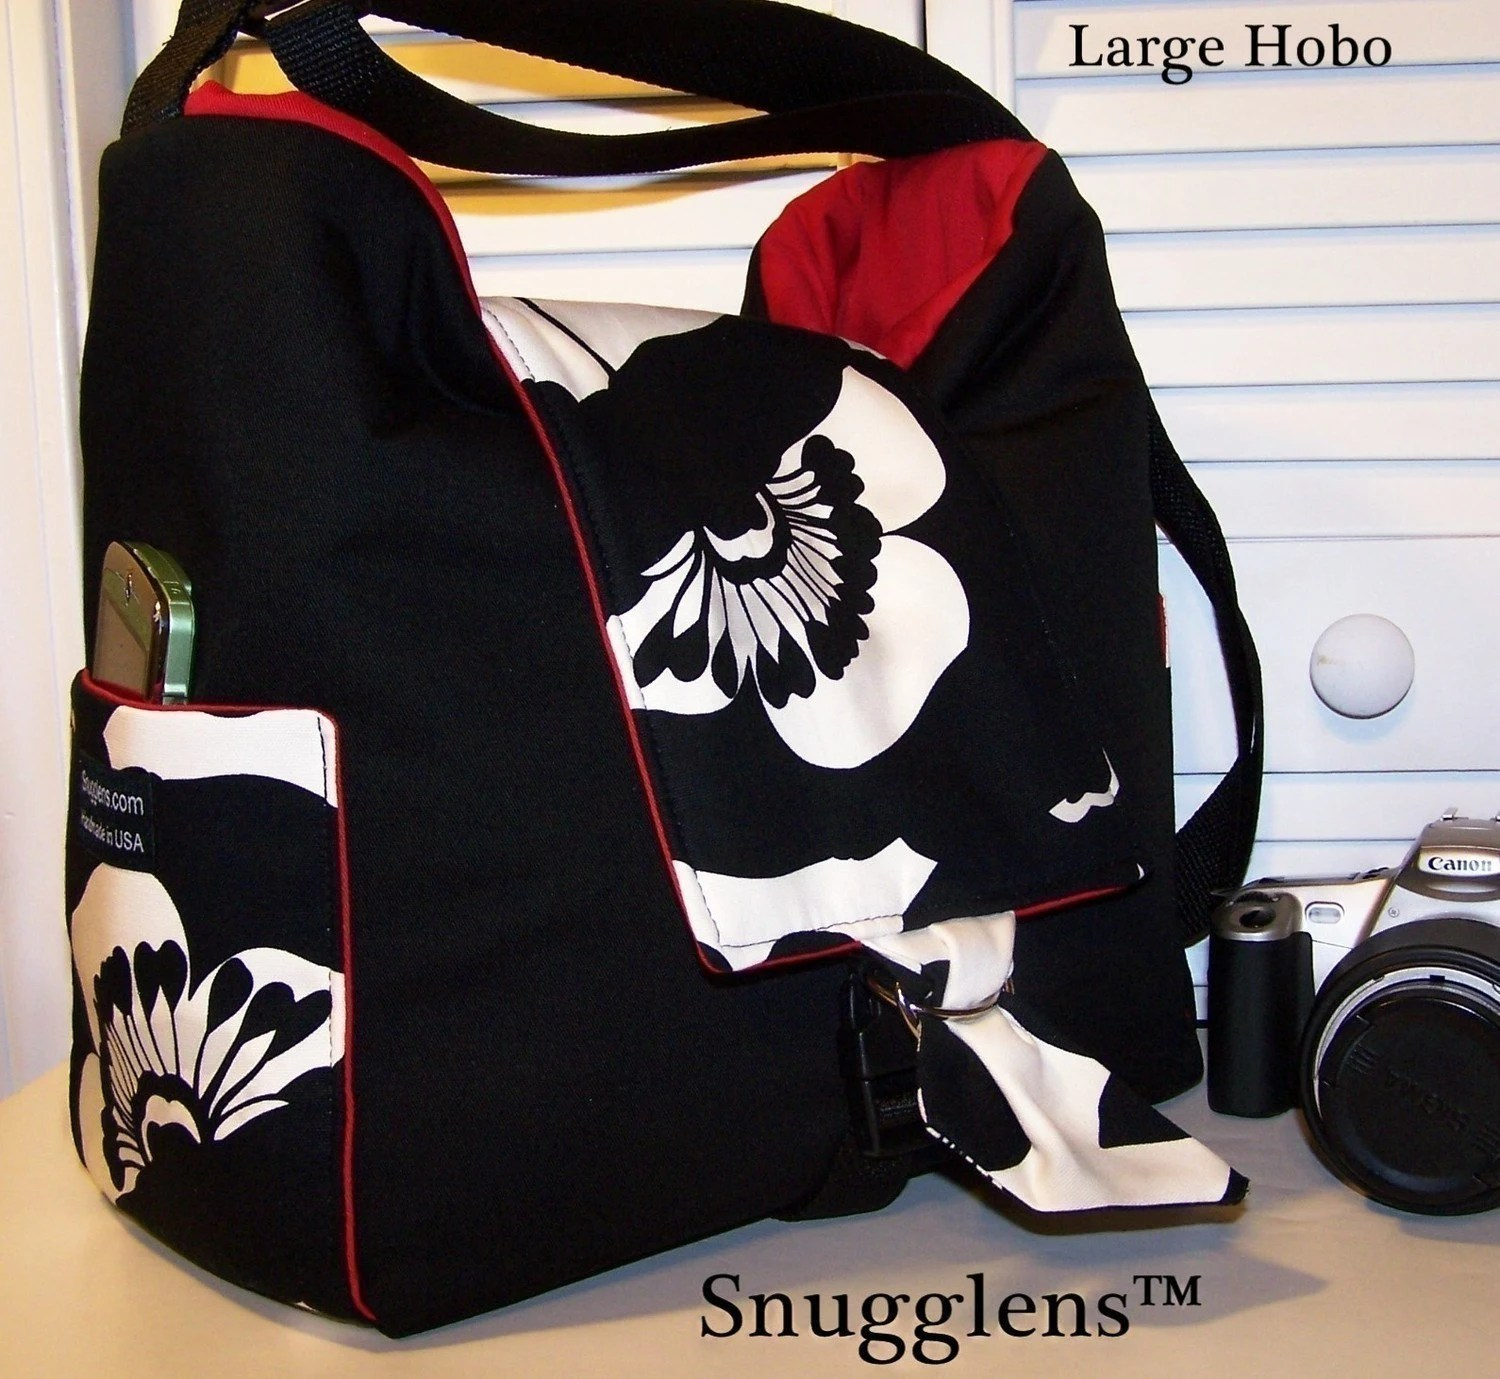 CUSTOM Cute Digital SLR HOBO camera bag..LARGE...Sofia black and offwhite w/red interior/SNUGGLENS